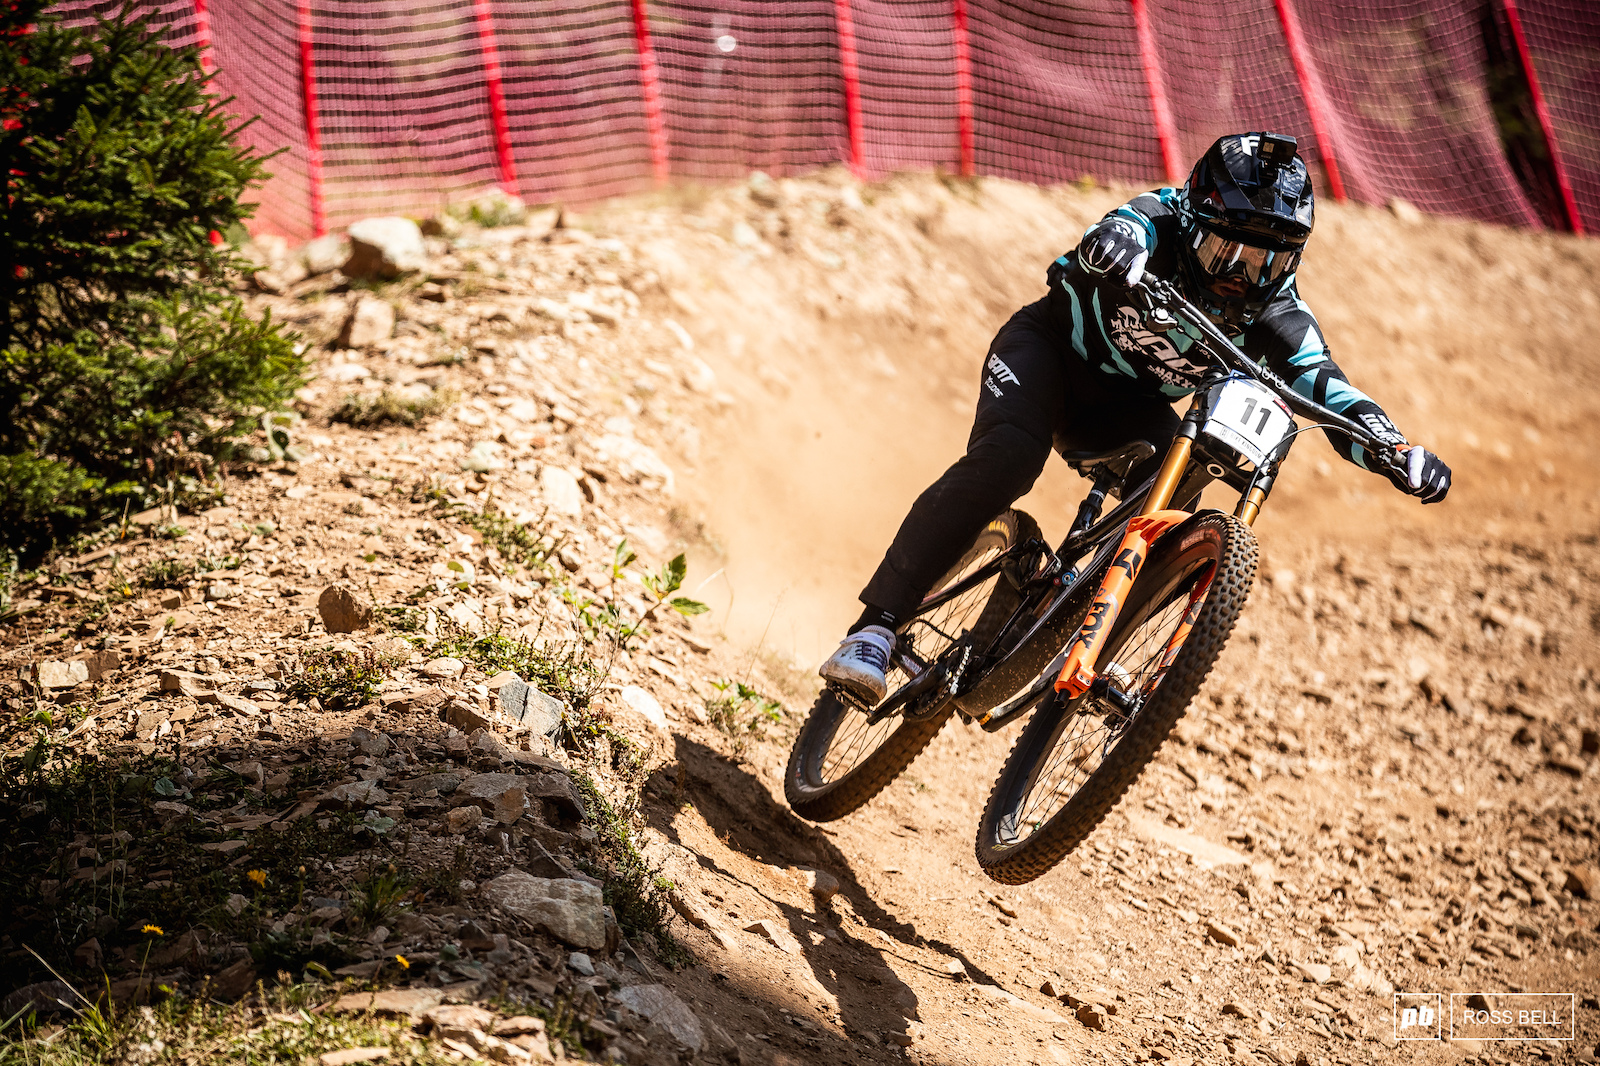 Remi Thirion pushing hard in the flat out turn.